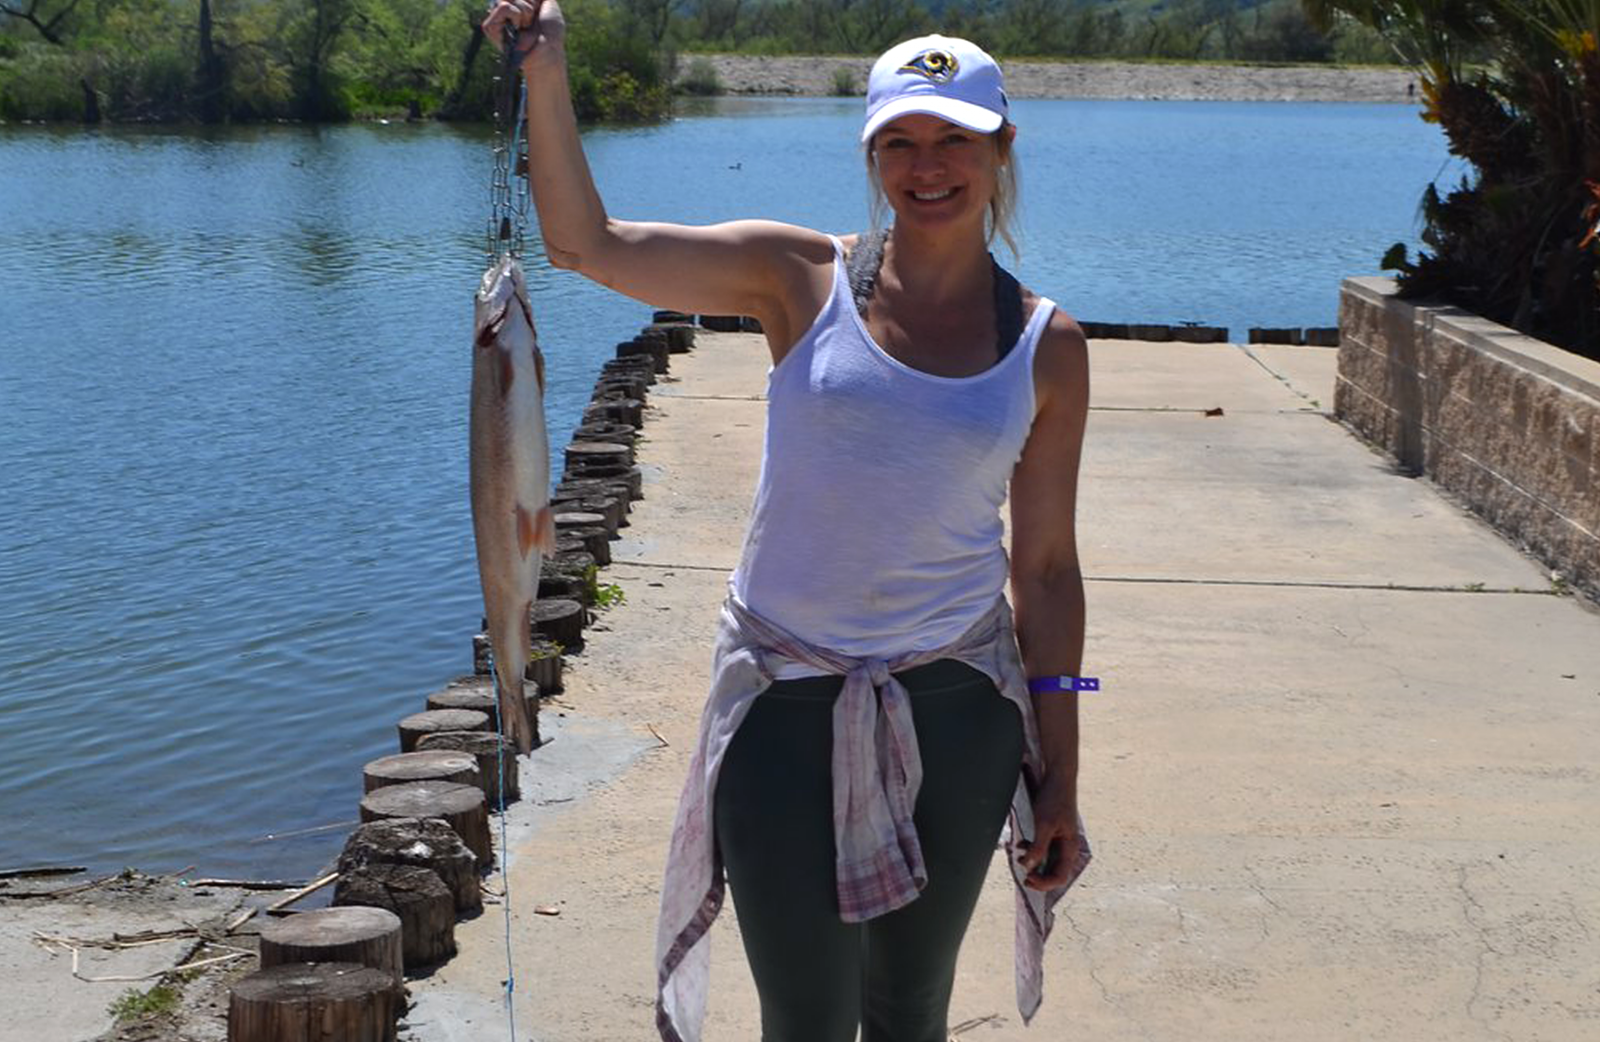 A woman holds up a bass fish she caught at Prado park.